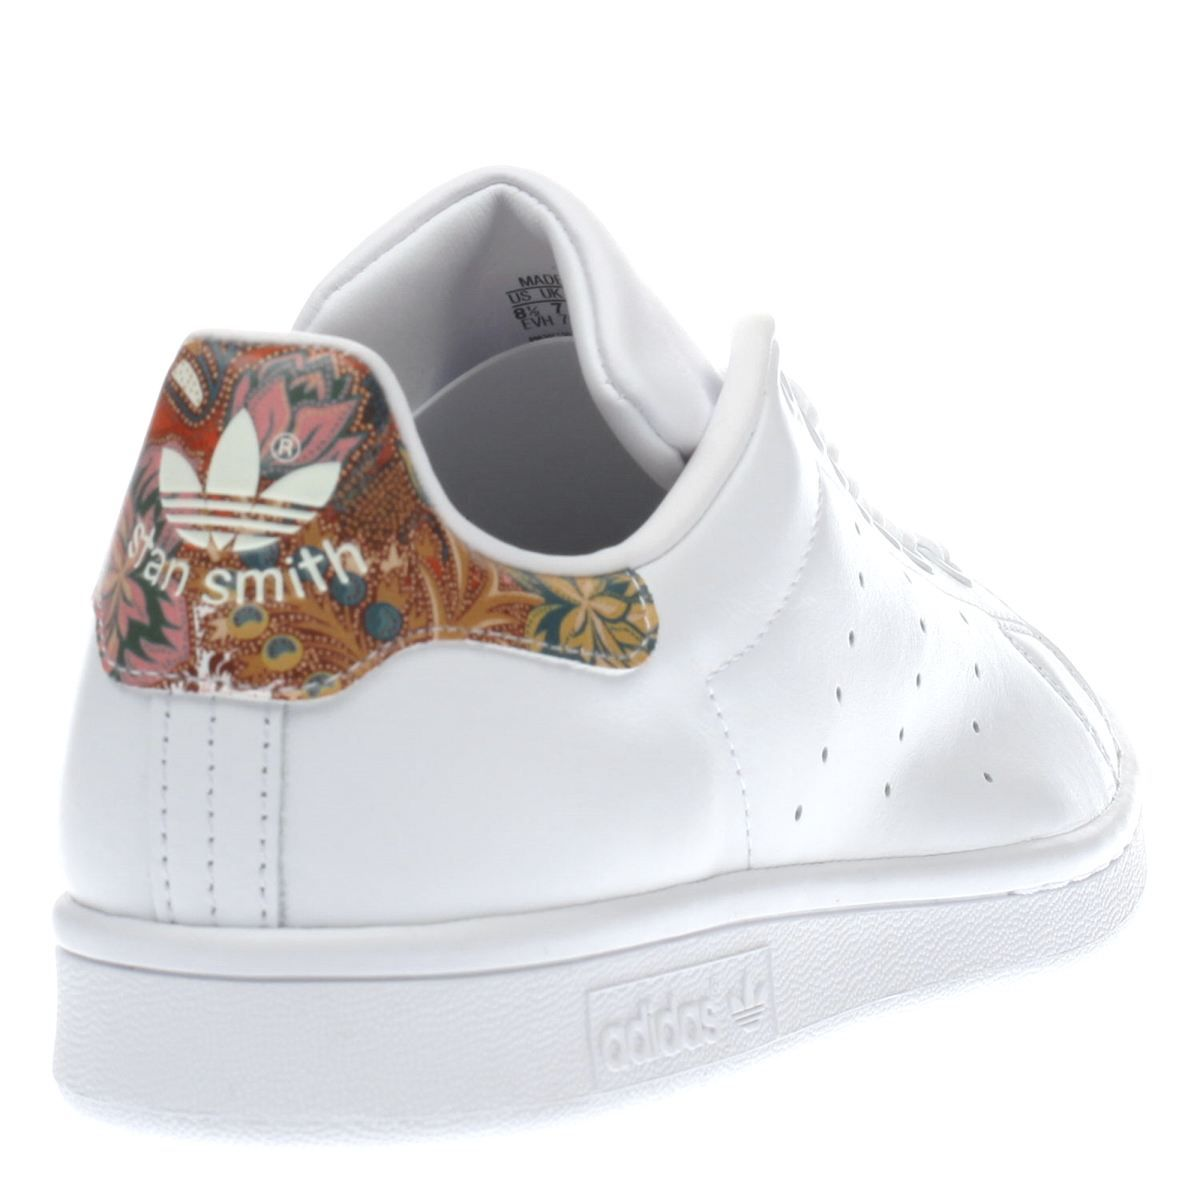 6d397cf19b2 womens adidas white   orange stan smith floral trainers